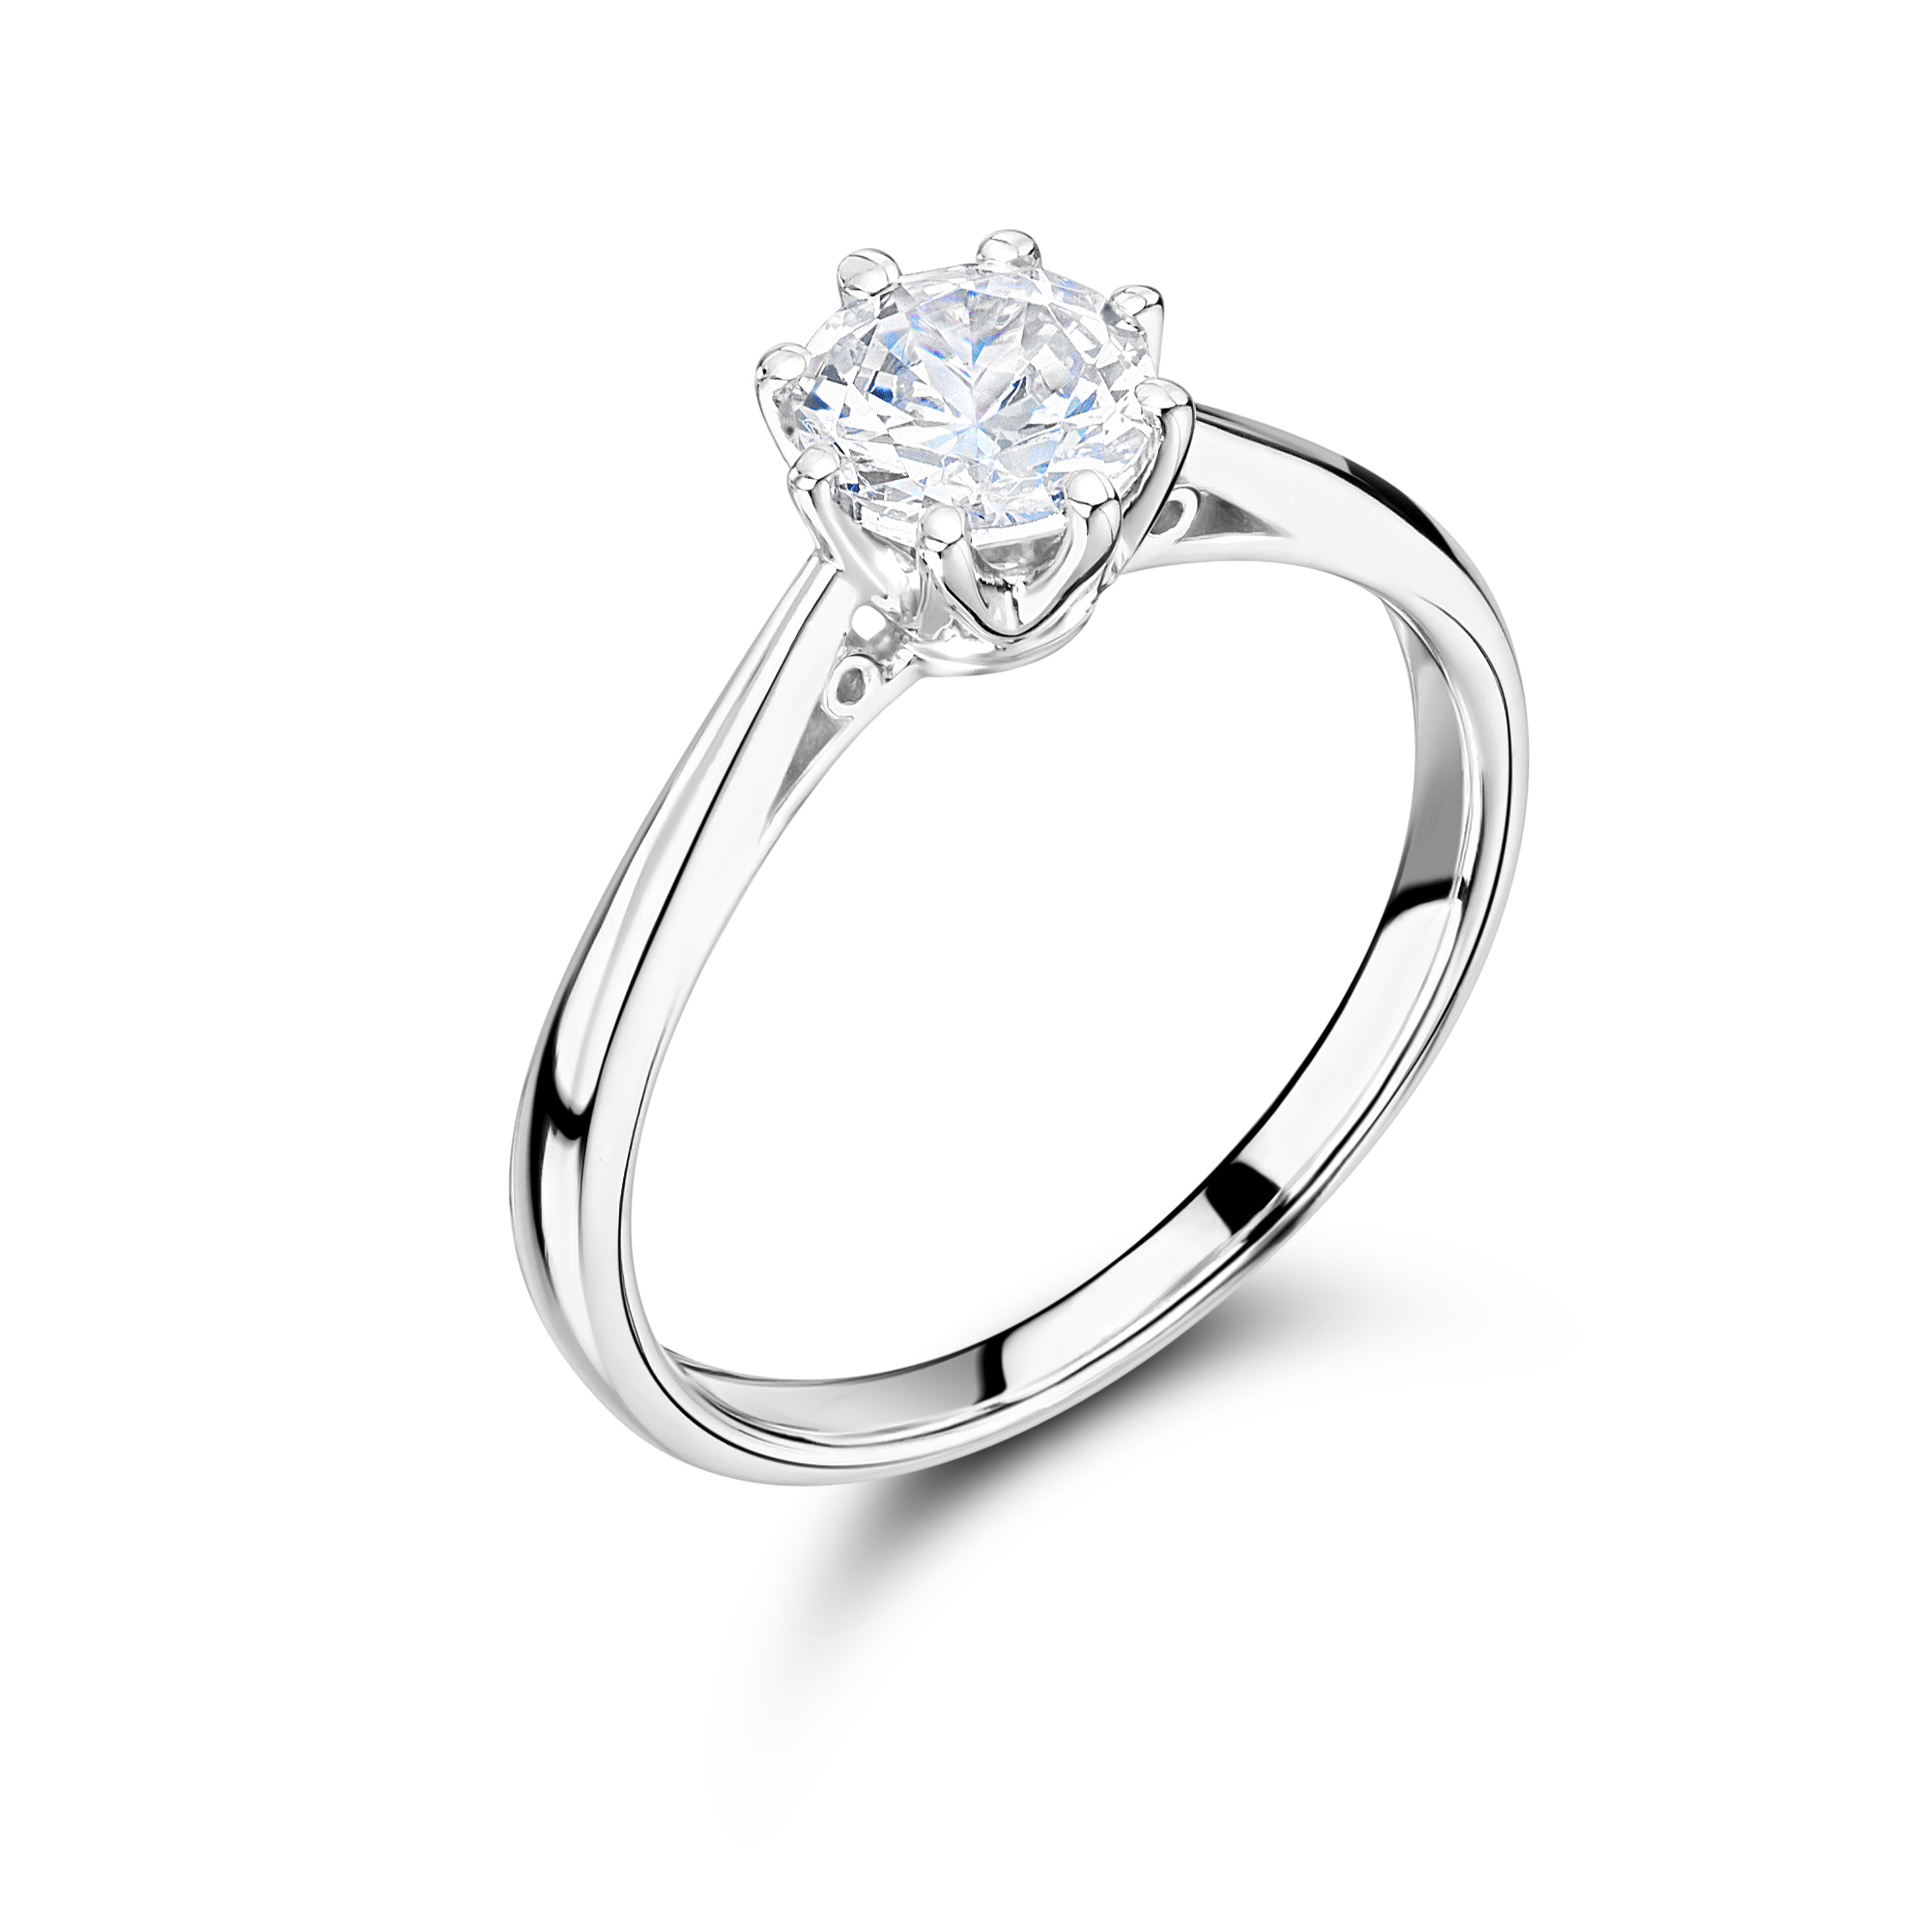 ring product weldon matthew solitaire diamond rings dress img boodles